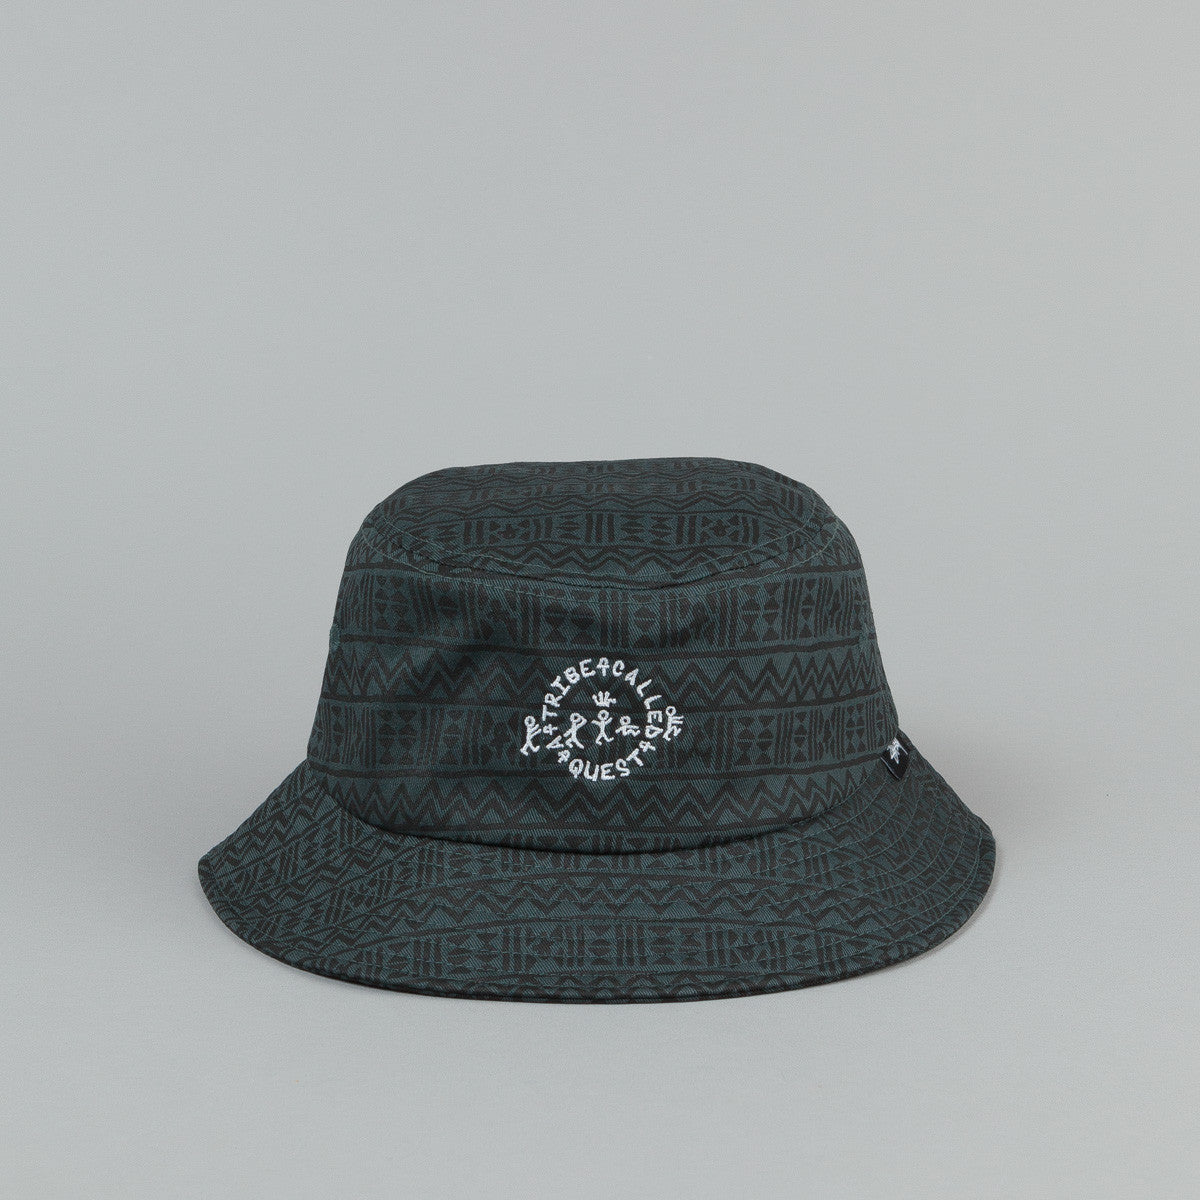 Stussy x ATCQ Bucket Hat Forest